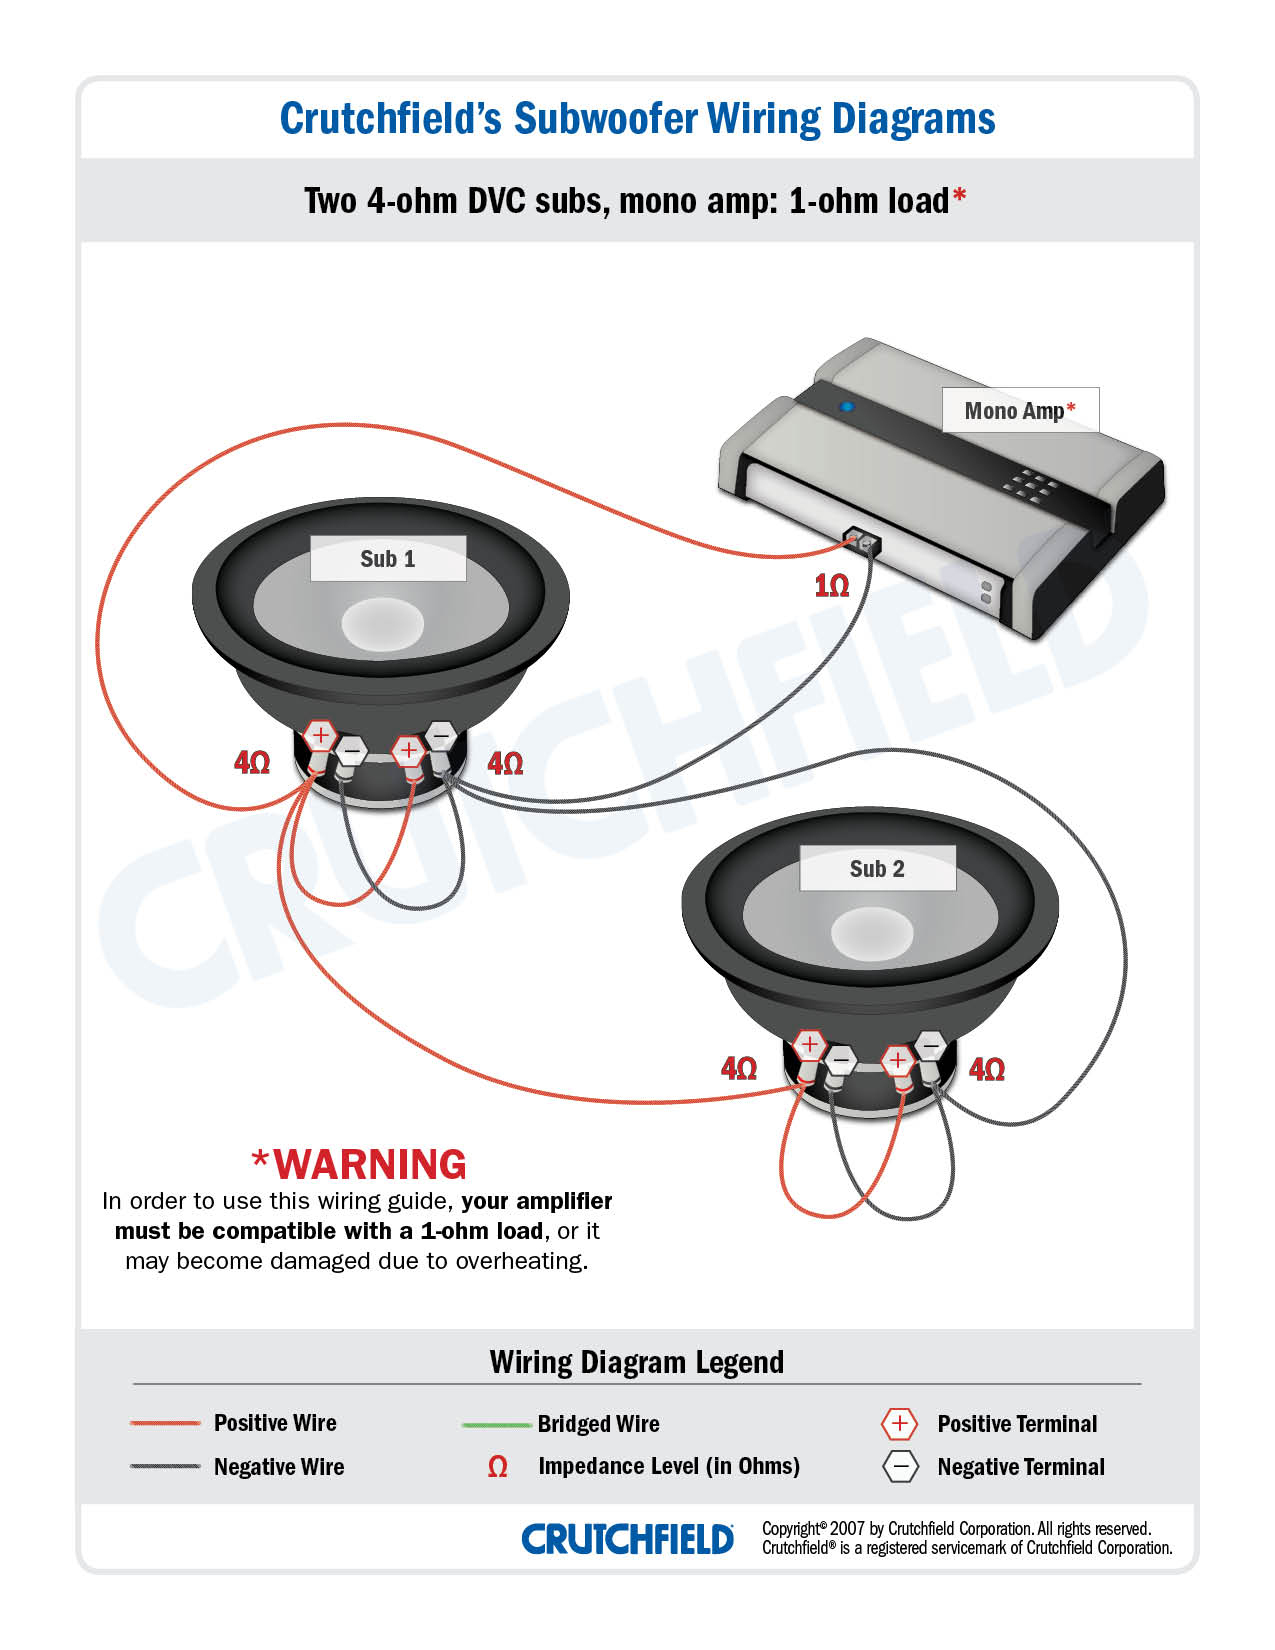 Subwoofer Wiring Diagrams — How To Wire Your Subs - Subwoofer Wiring Diagram Dual 2 Ohm